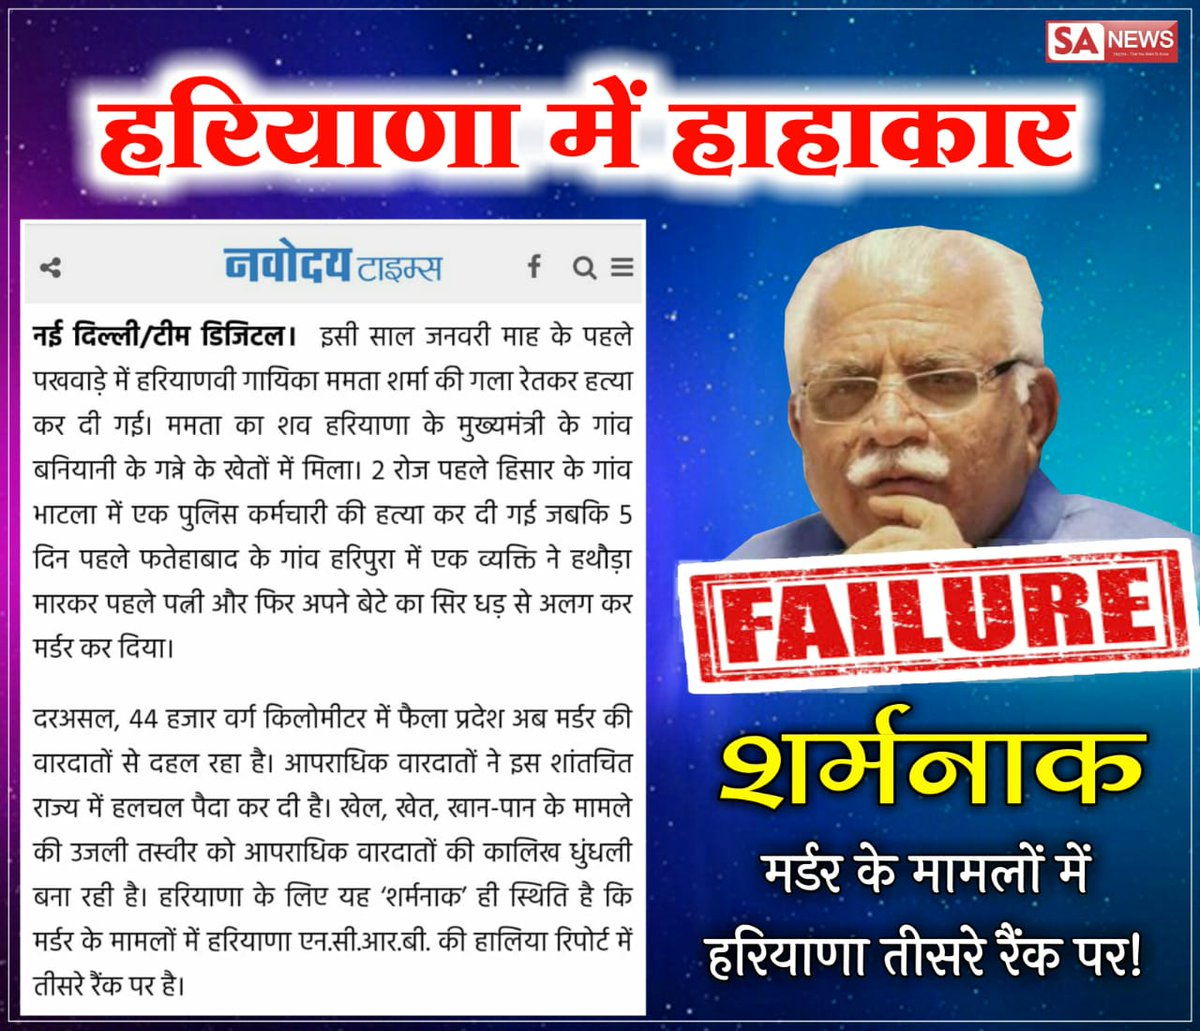 #मोदीराज_में_घोरअन्याय  Today, dictatorship is going on in India as you see in Haryana. Corruption is increasing in Haryana.  Modi ji think something about India&#39;s future. @PMOIndia  @cmohry  @ndtv  @Incredibleindia <br>http://pic.twitter.com/hS5Cu9sB6k